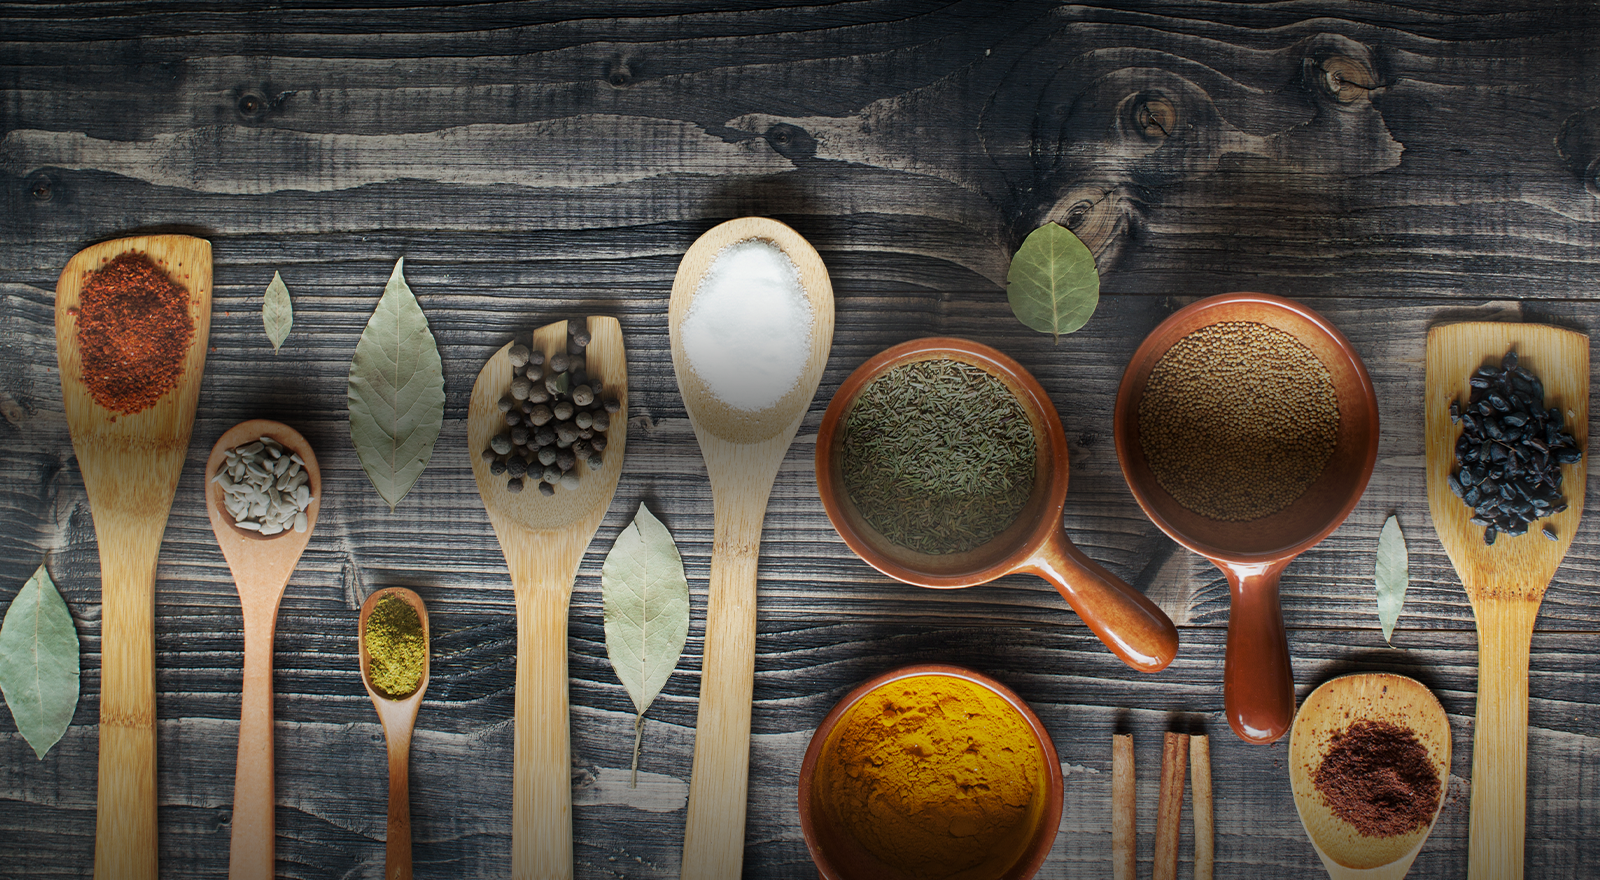 An assortment of spices in measuring cups and on wooden spoons laid out on a wooden board.